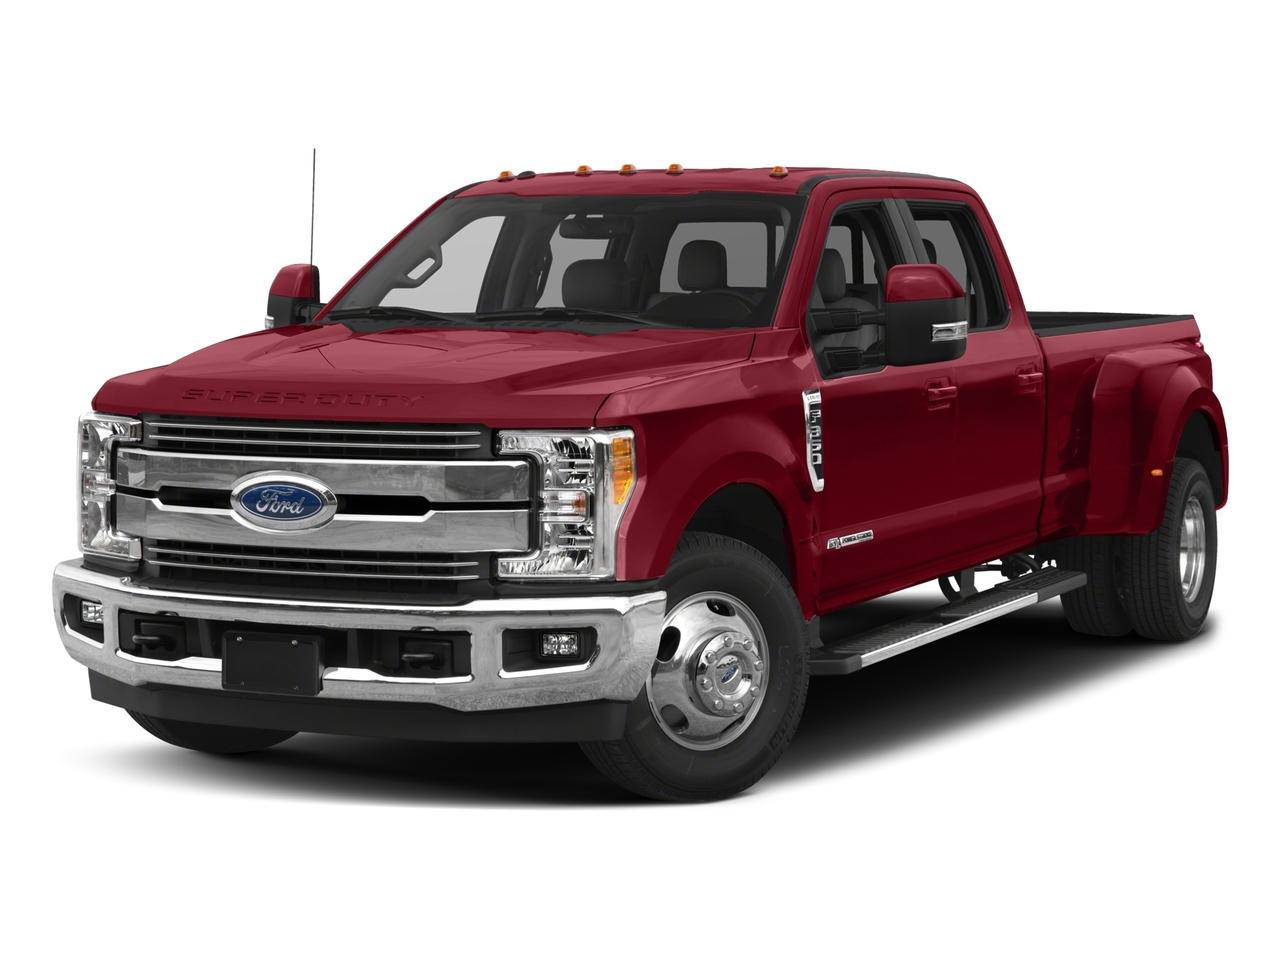 2017 Ford Super Duty F-350 DRW Vehicle Photo in BEND, OR 97701-5133